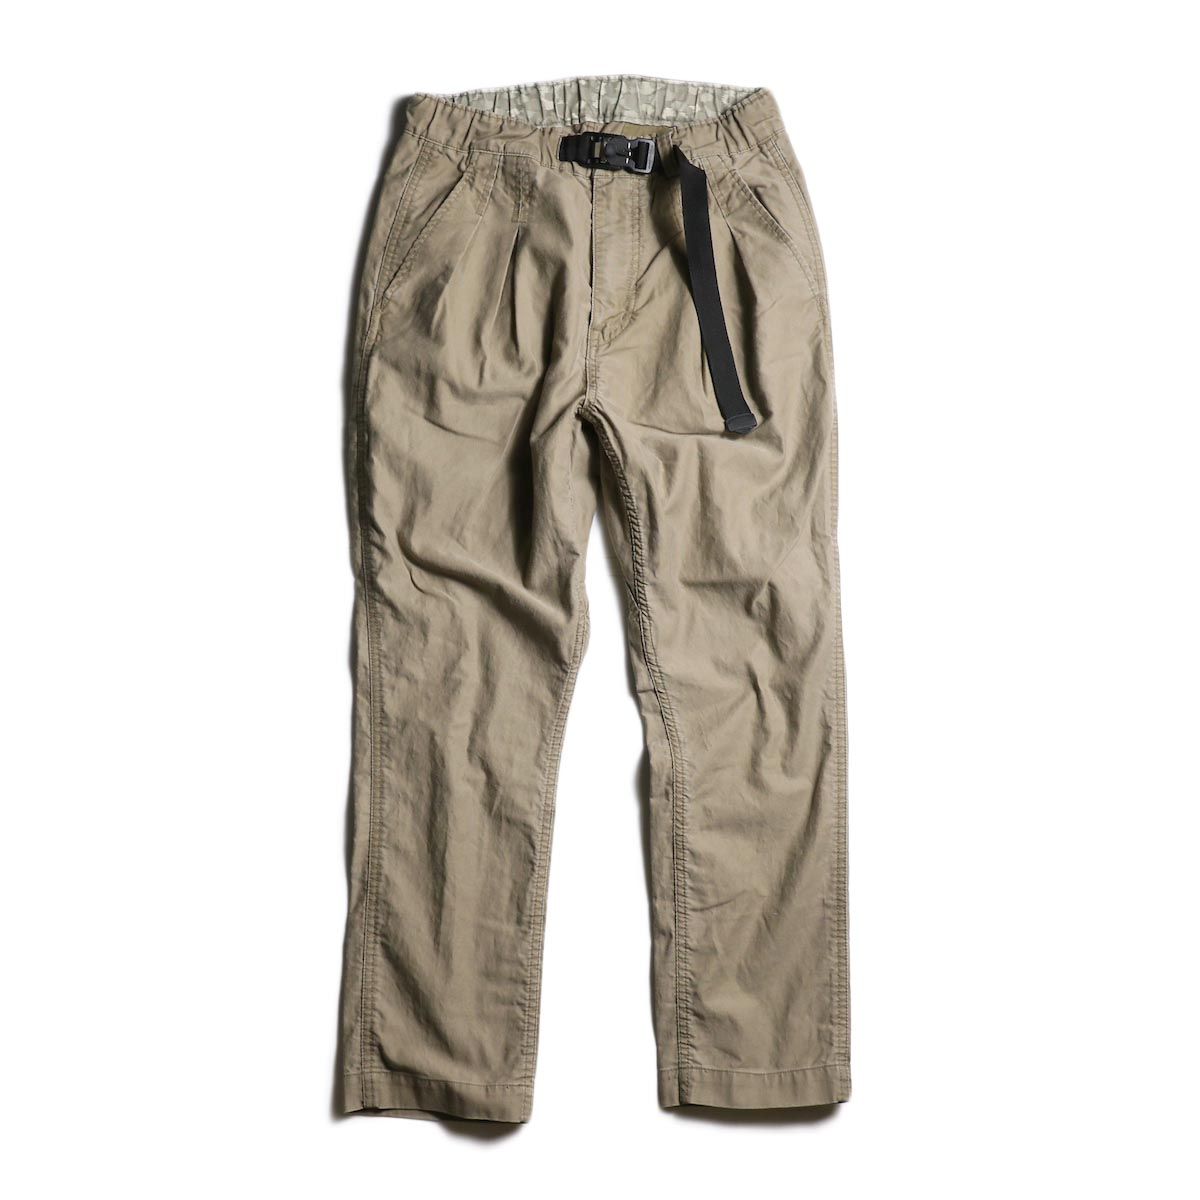 nonnative / EXPLORER EASY PANTS COTTON COMPACT CORD WITH FIDLOCK® BUCKLE (Beige)